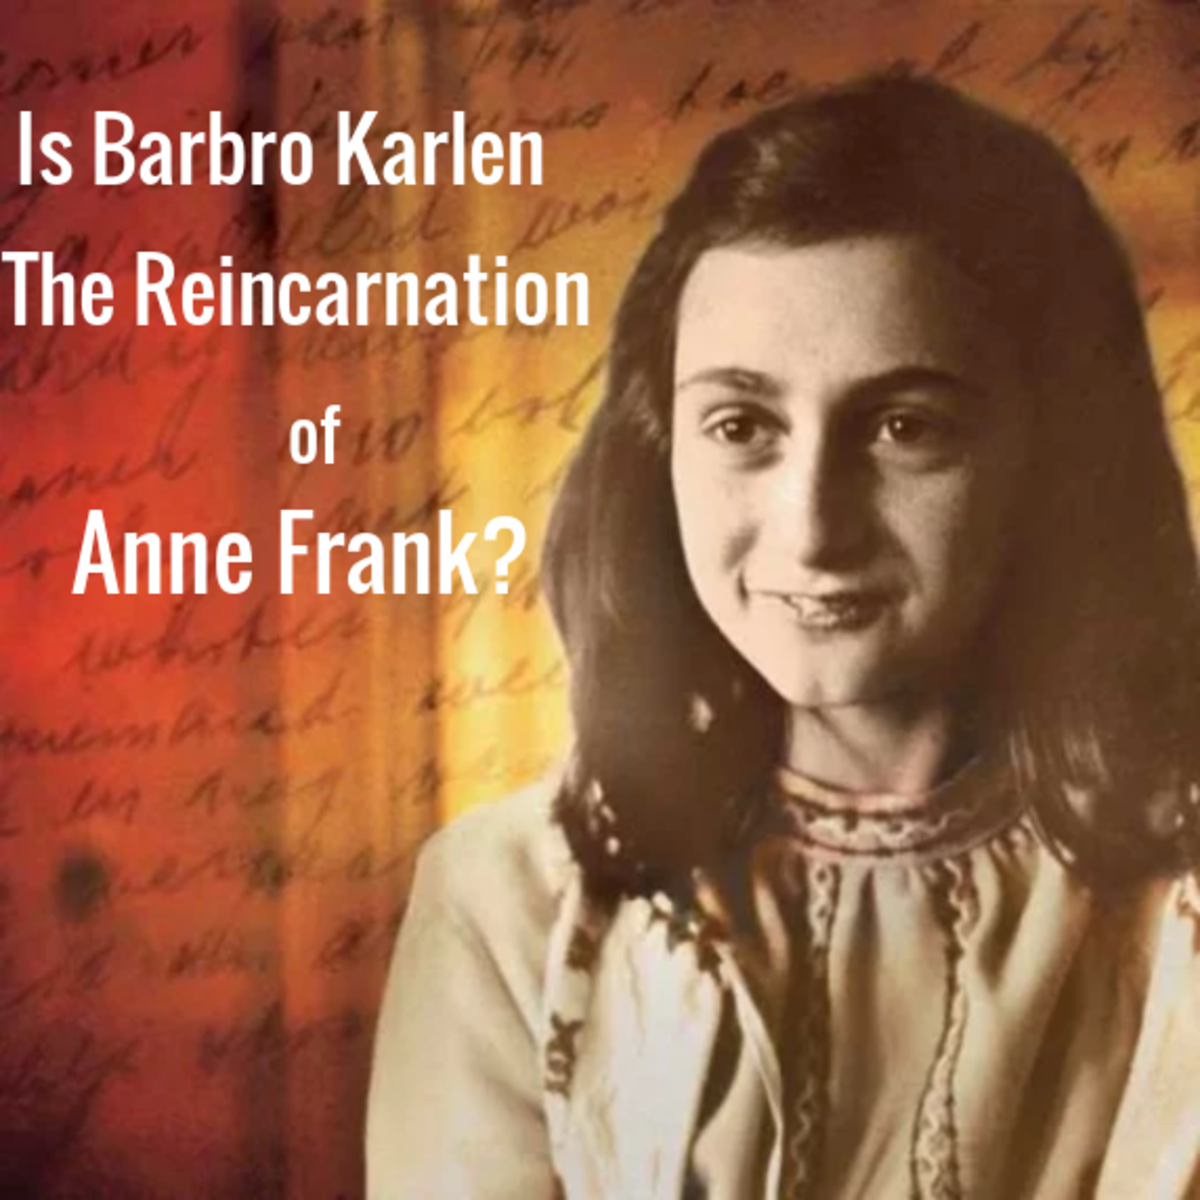 Is Barbro Karlén the Reincarnation of Anne Frank?